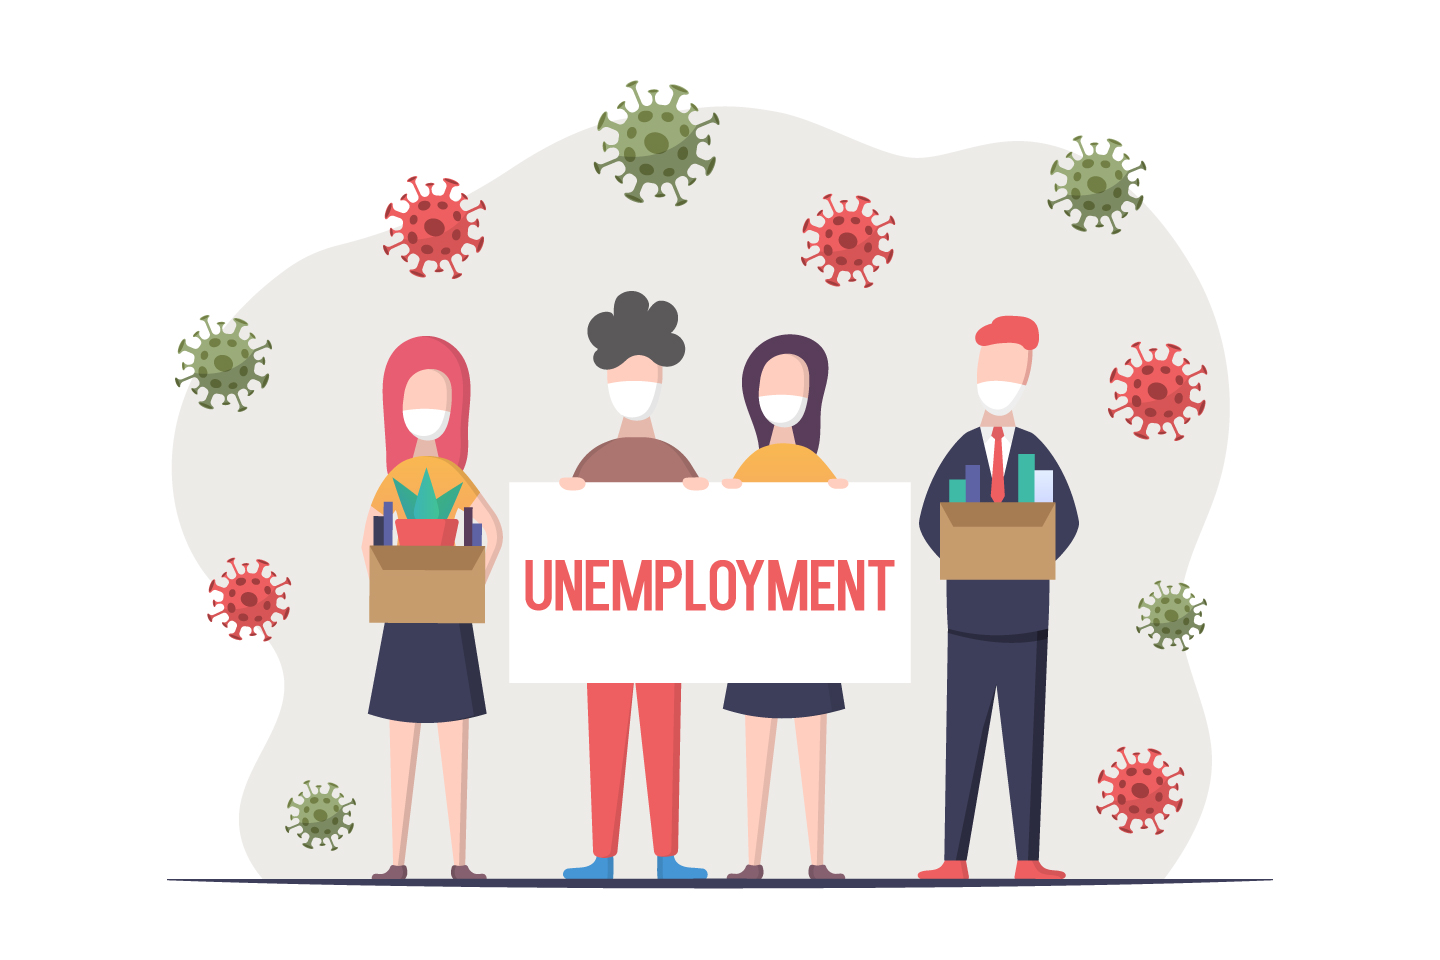 Unemployment During a Pandemic and Epidemic Flat Design